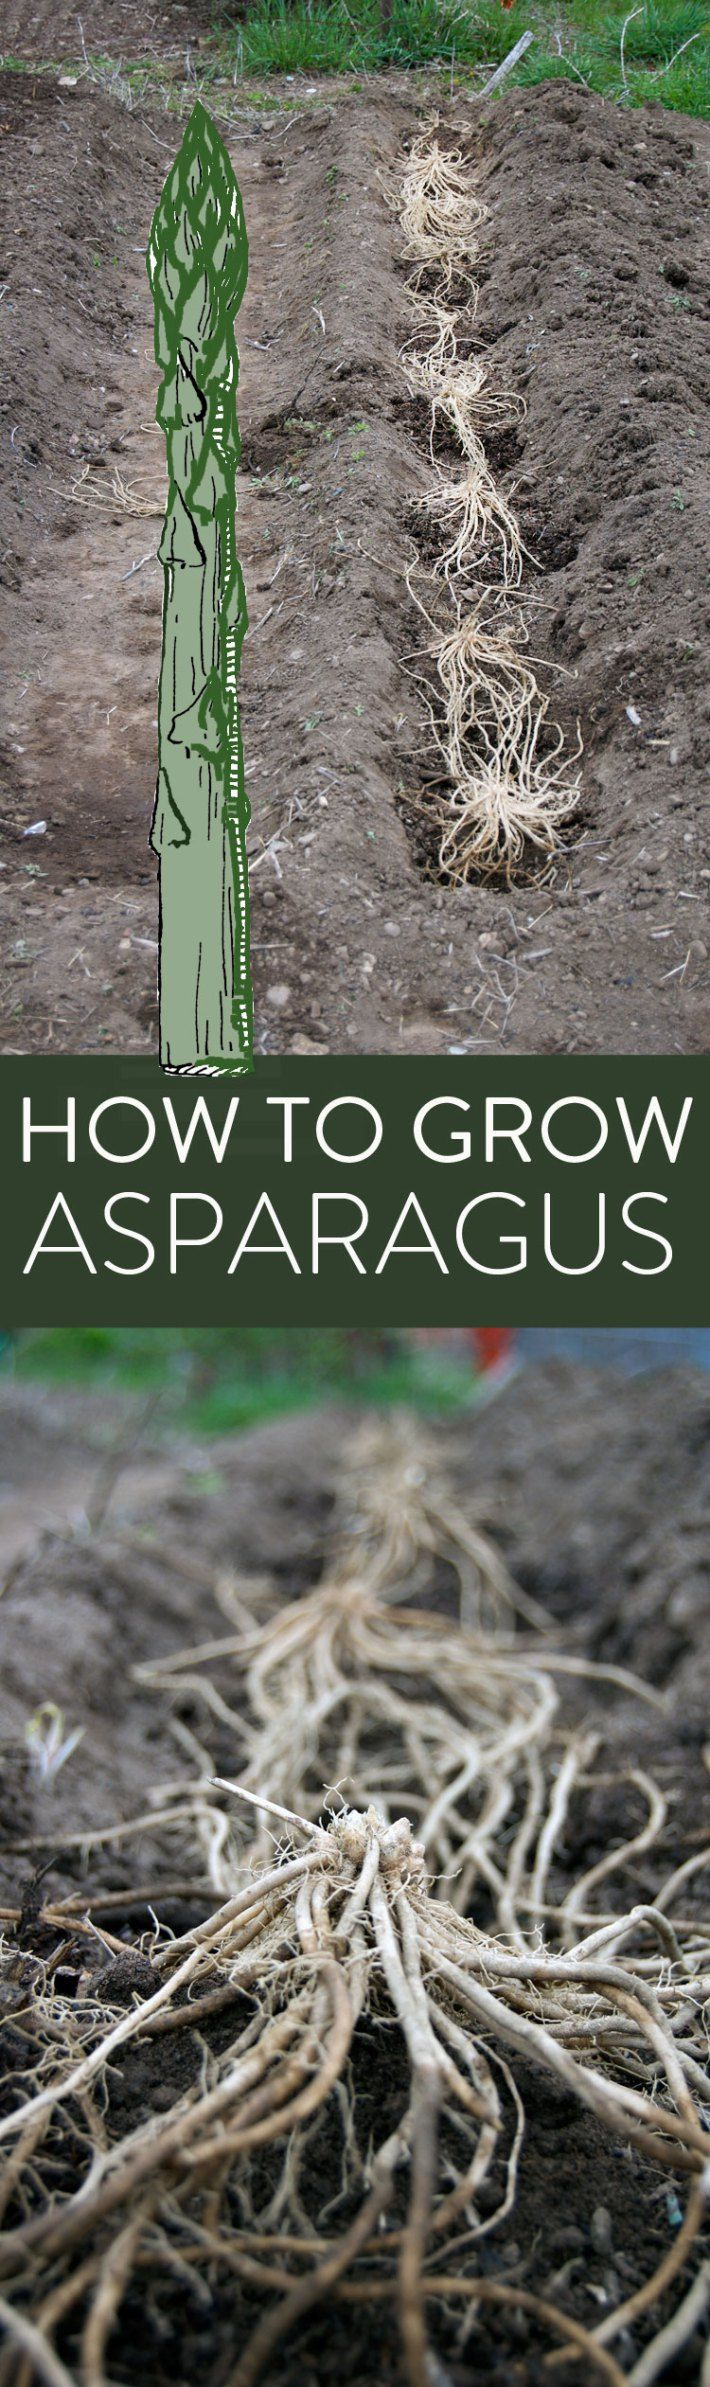 A great guide to growing asparagus. Zones it grows in, how to plant it, plus a handy tip sheet. Yes it takes 2 years to harvest. Big deal. It's worth it!